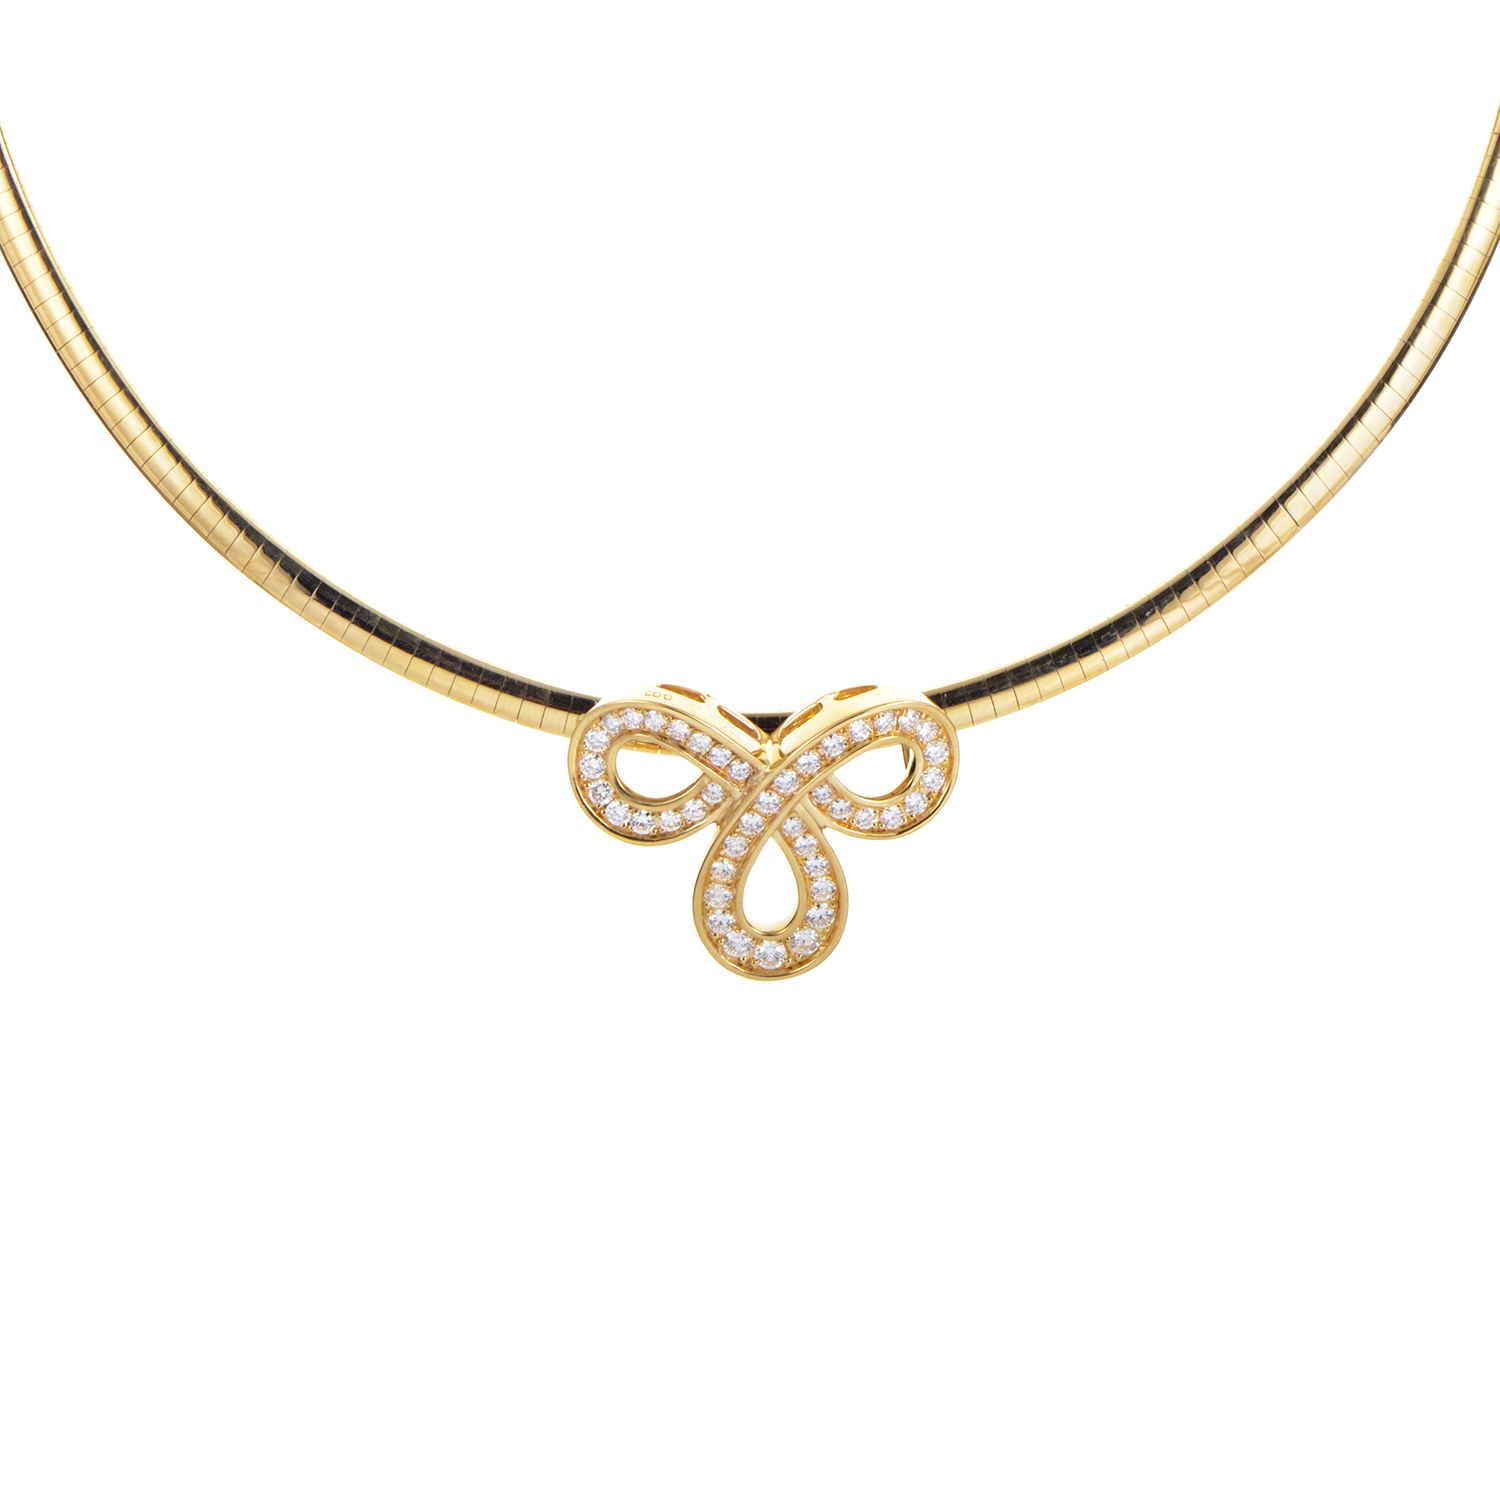 Dior 18K Yellow Gold Diamond Necklace